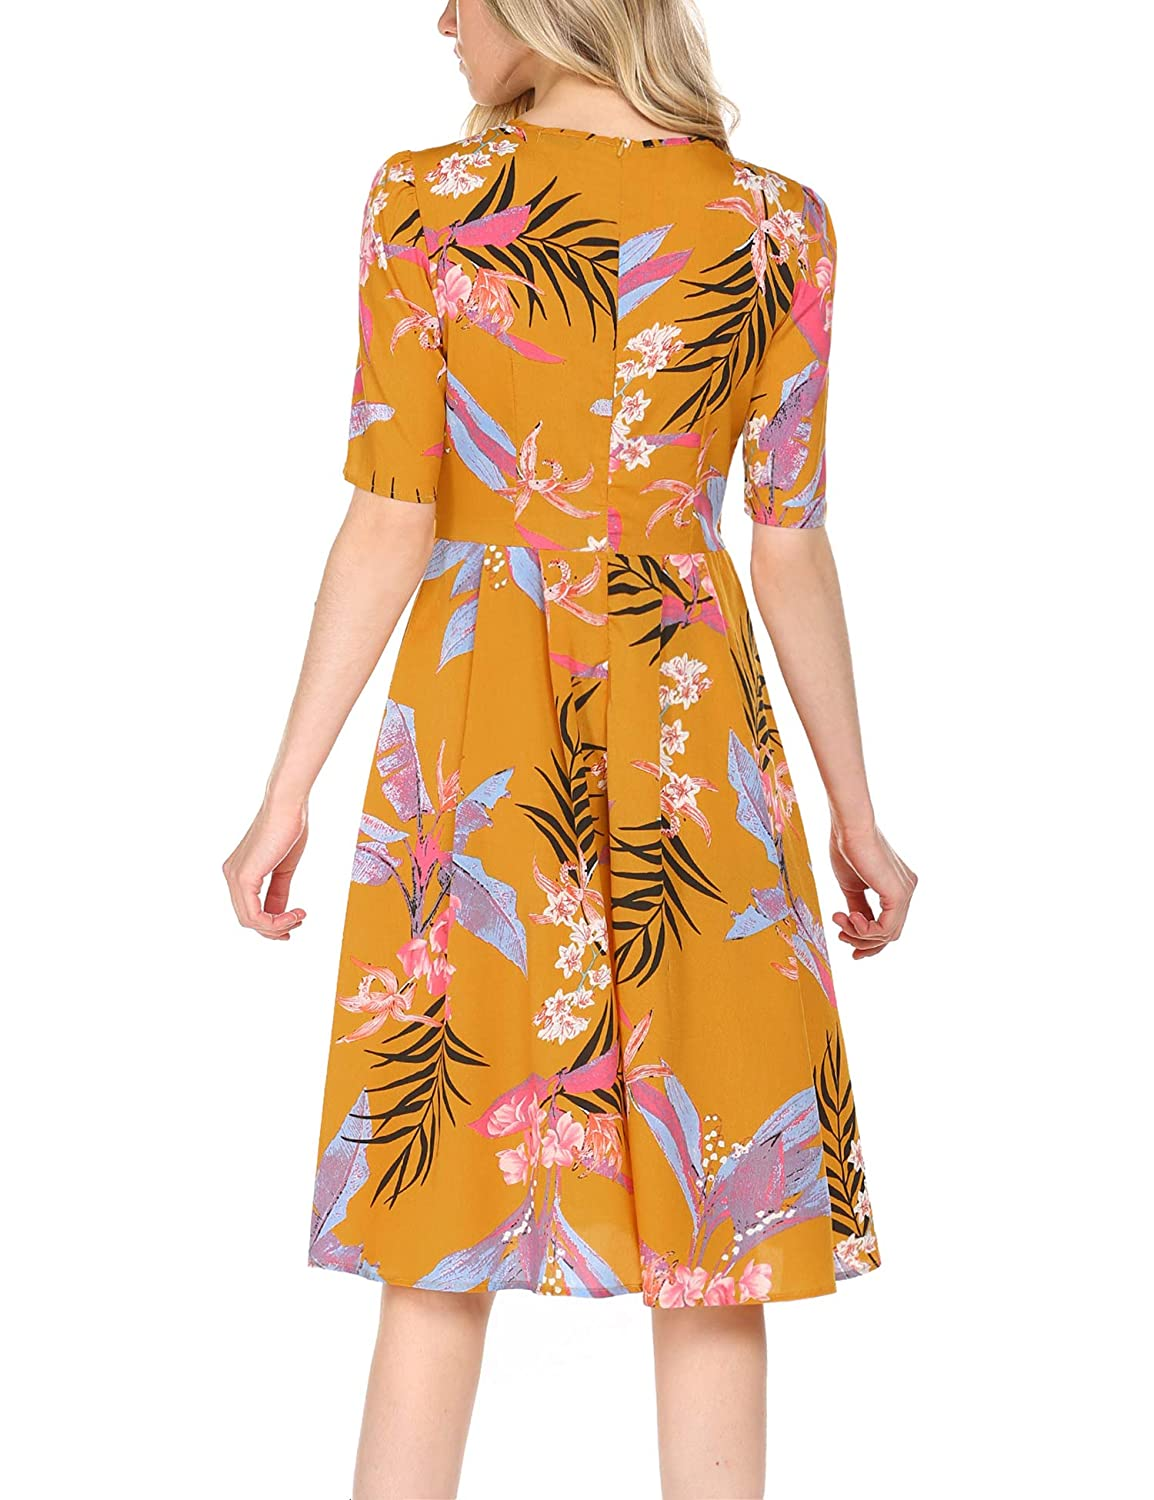 ACEVOG Womens Casual Short Sleeve Floral Printed Fit and Flare Party Dress